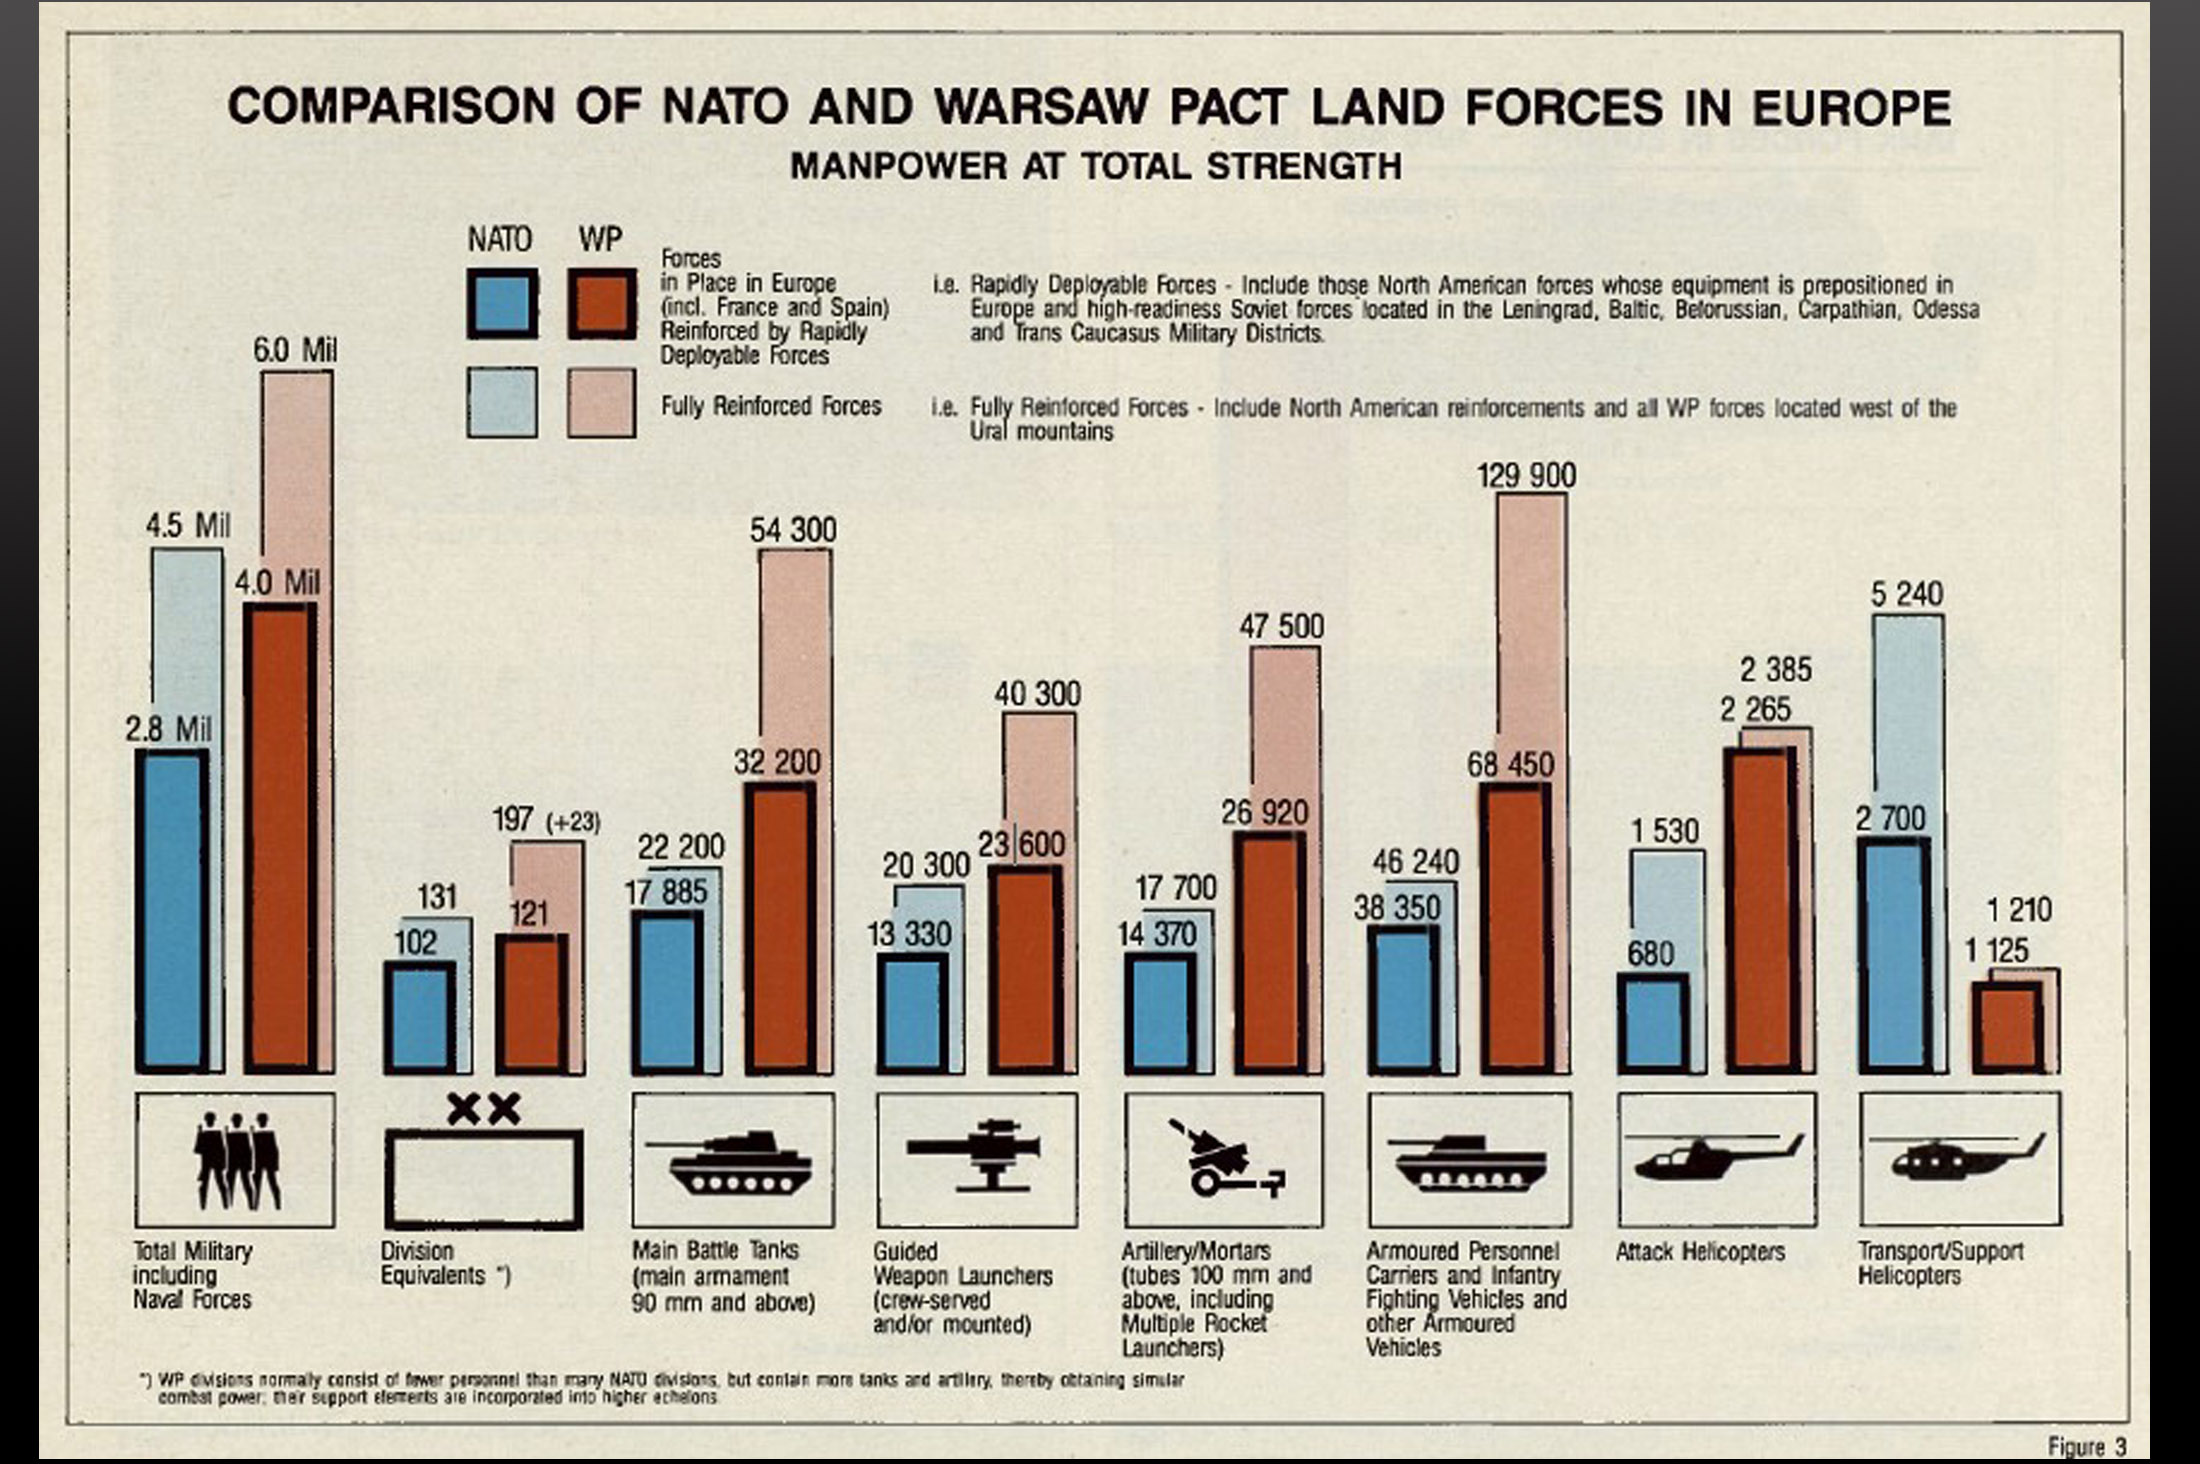 Comparison of NATO and Warsaw Pact land forces in Europe